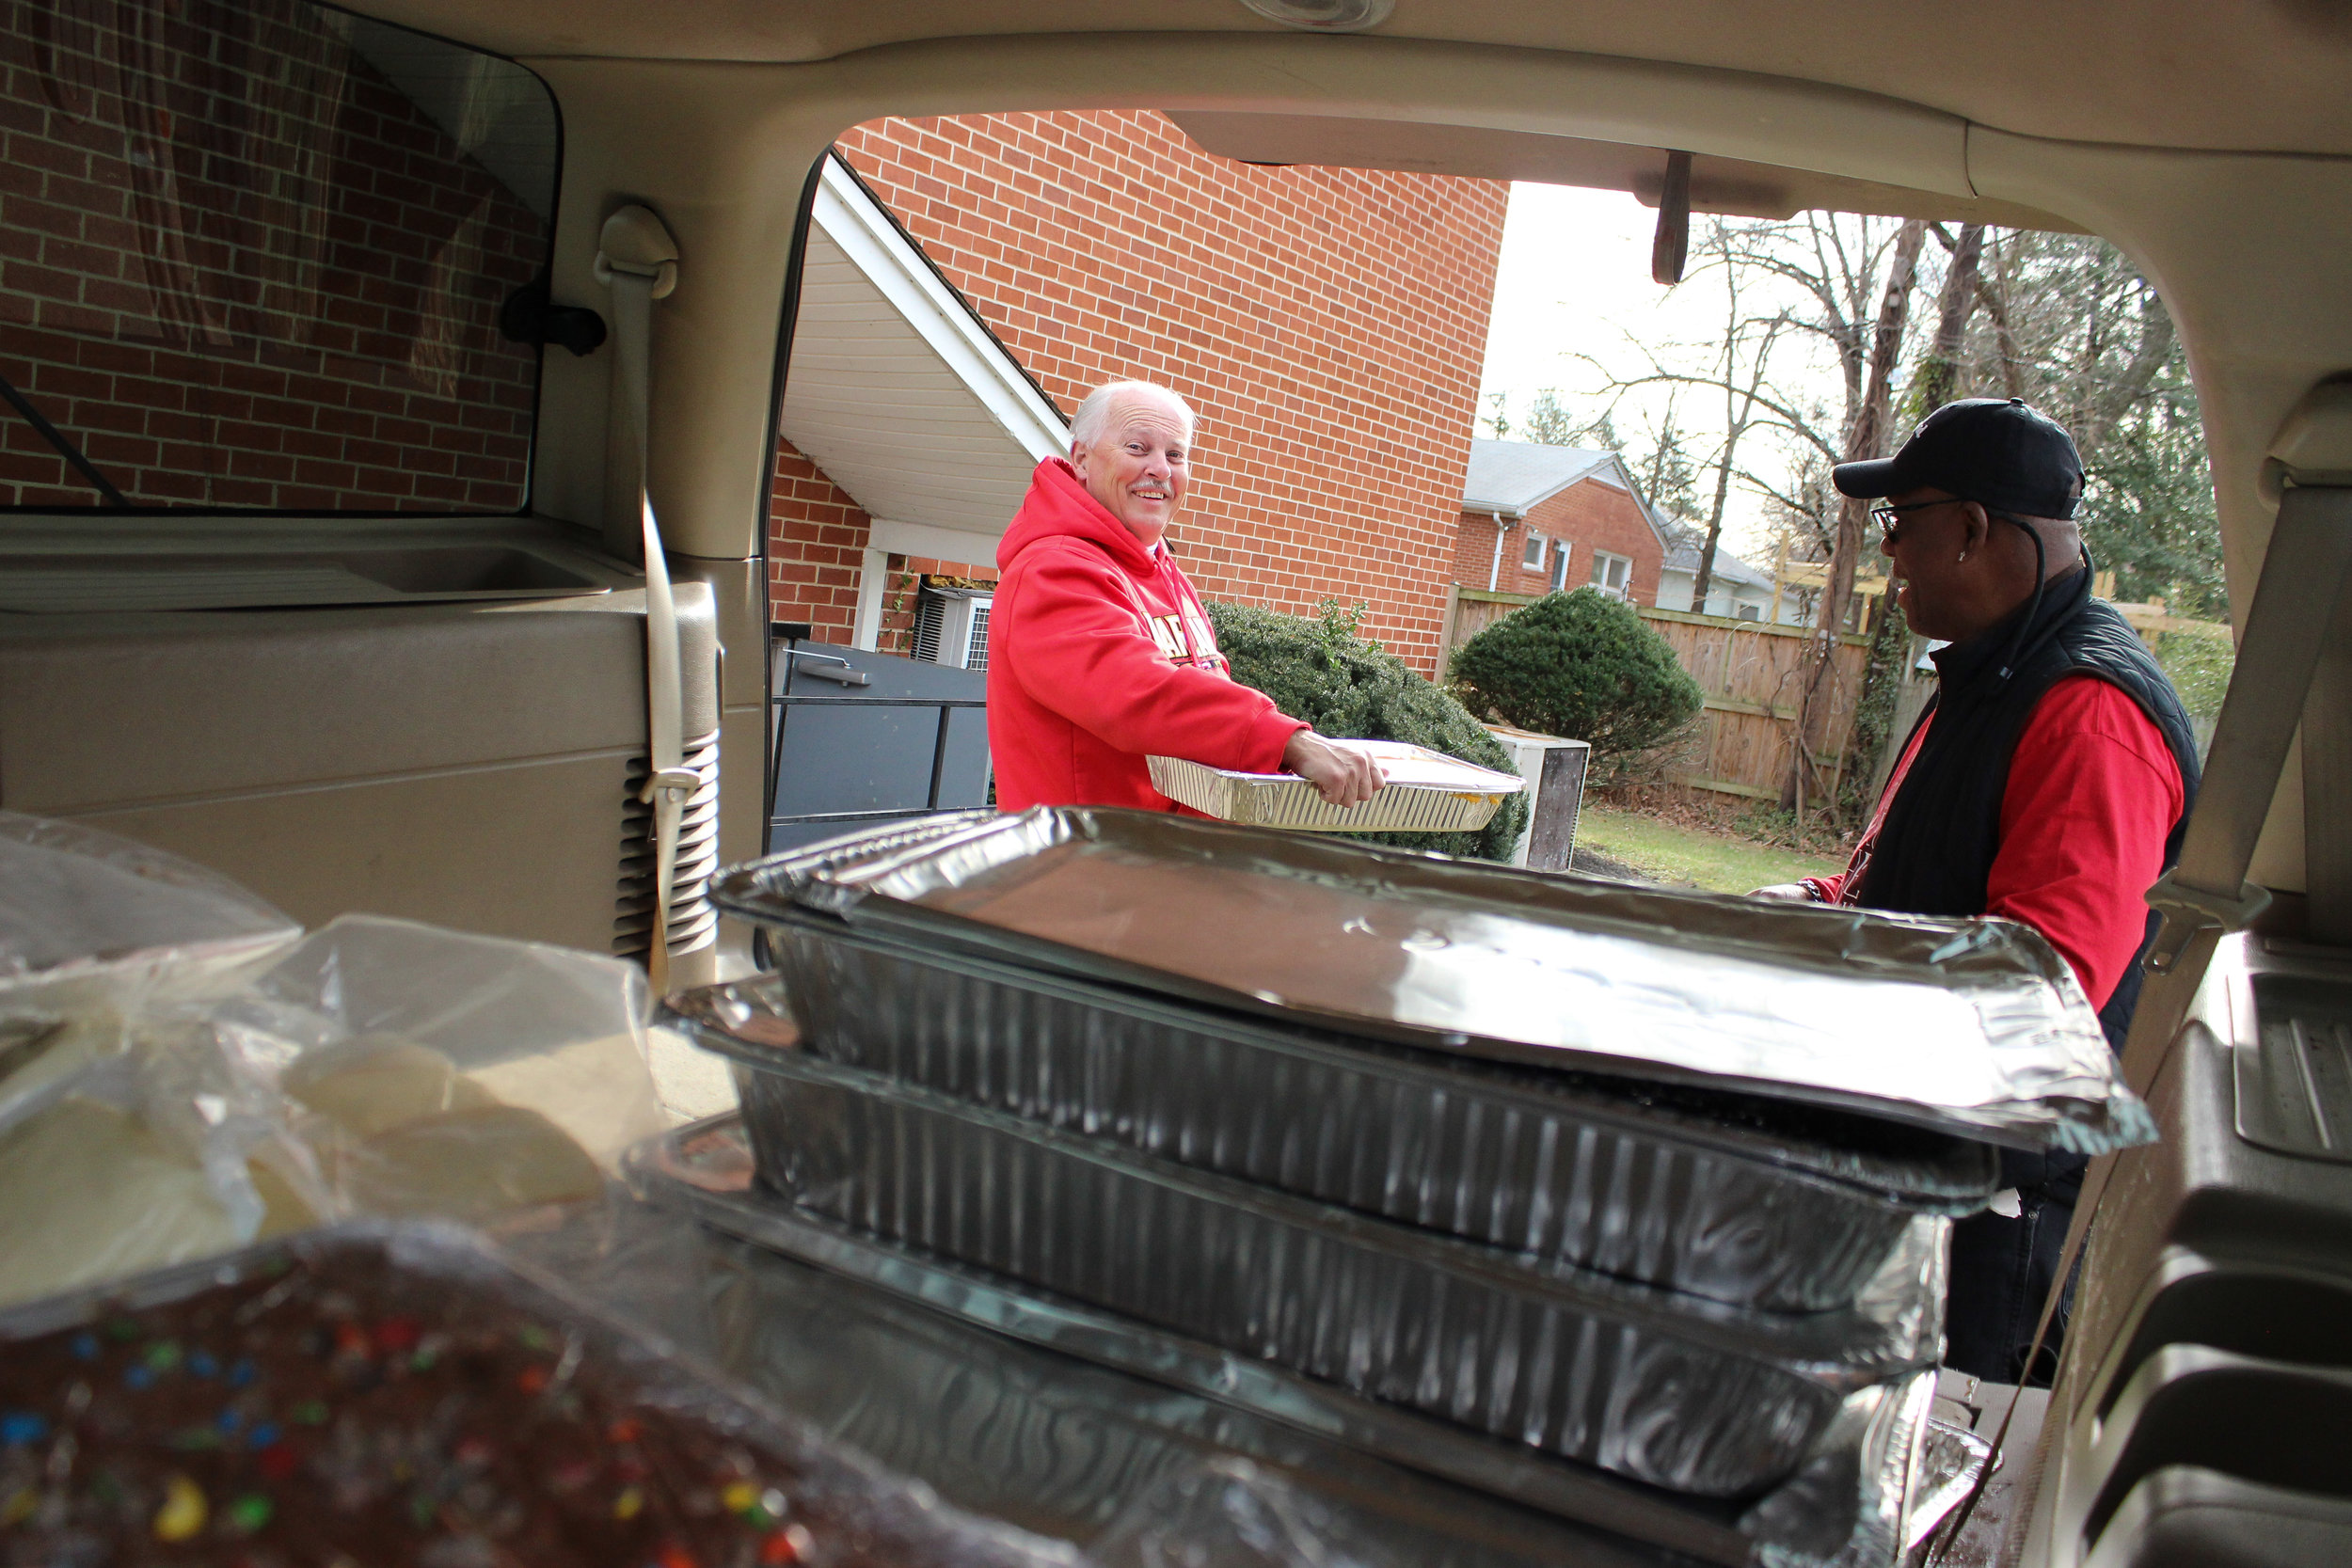 Pastor Ben (right) and Eric, who works closely with CLC's food pick-up and distribution program, unpack the van filled with surplus food.